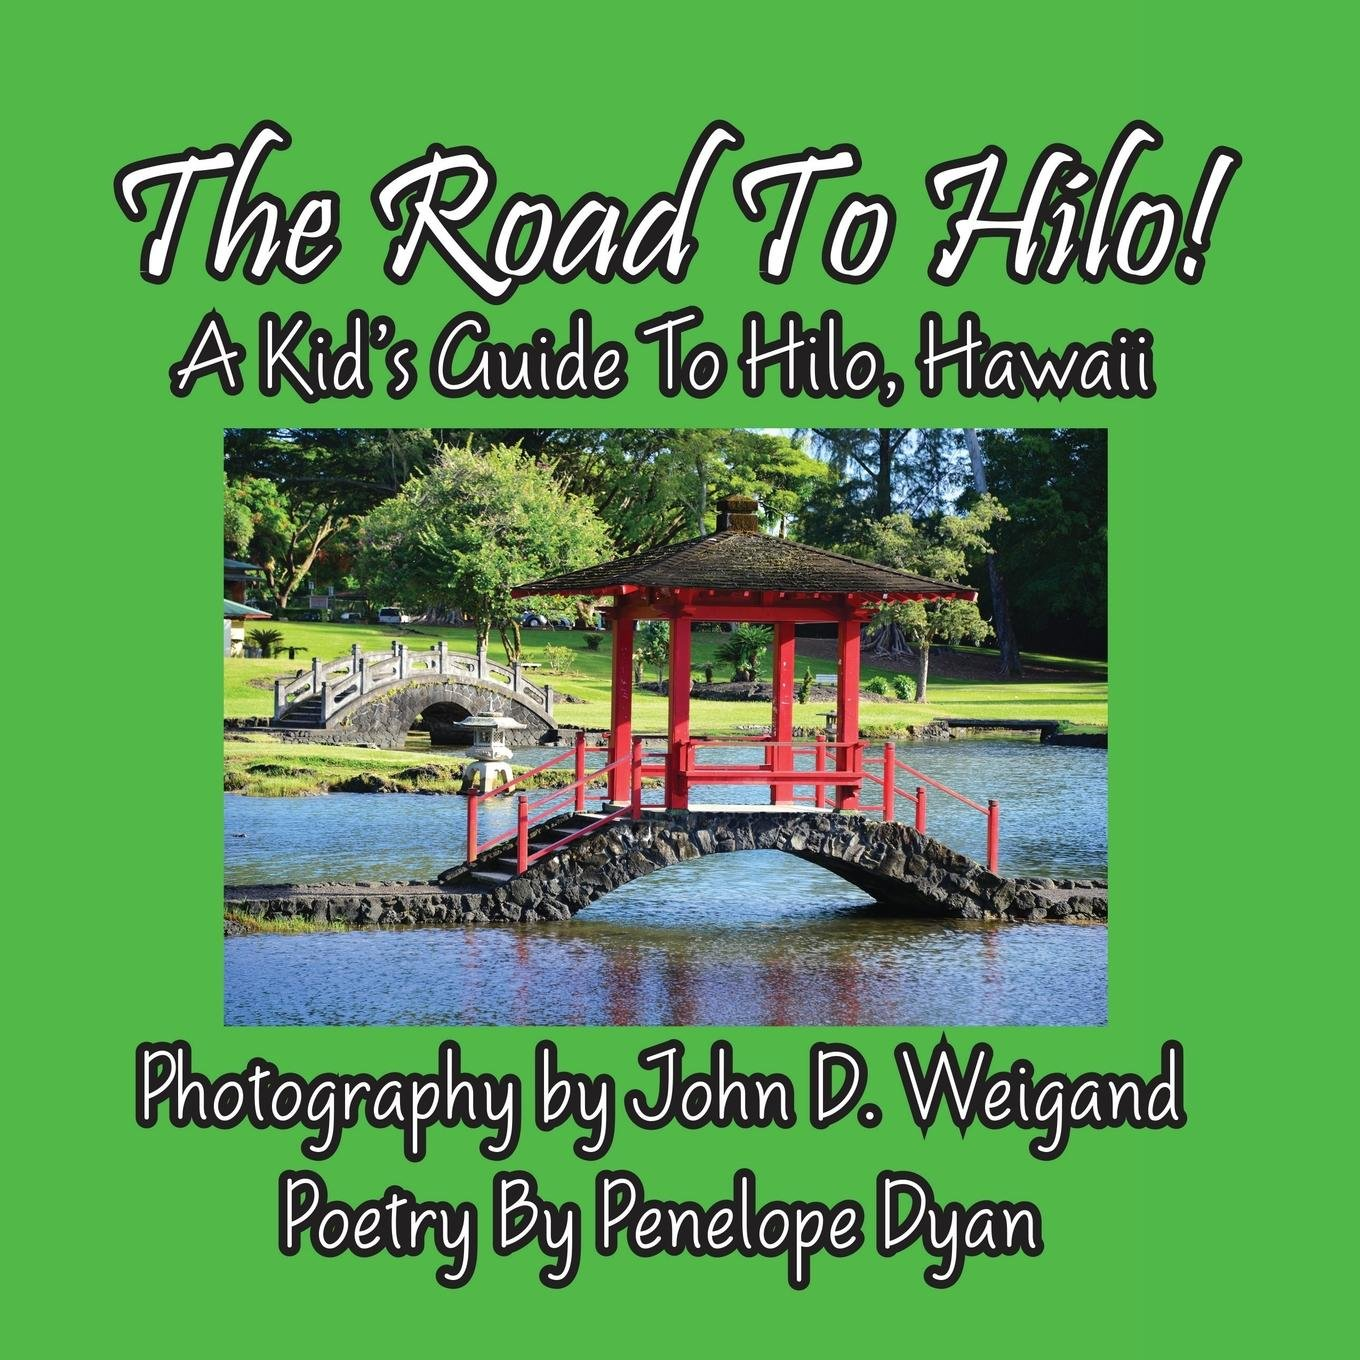 The Road to Hilo! a Kid's Guide to Hilo, Hawaii